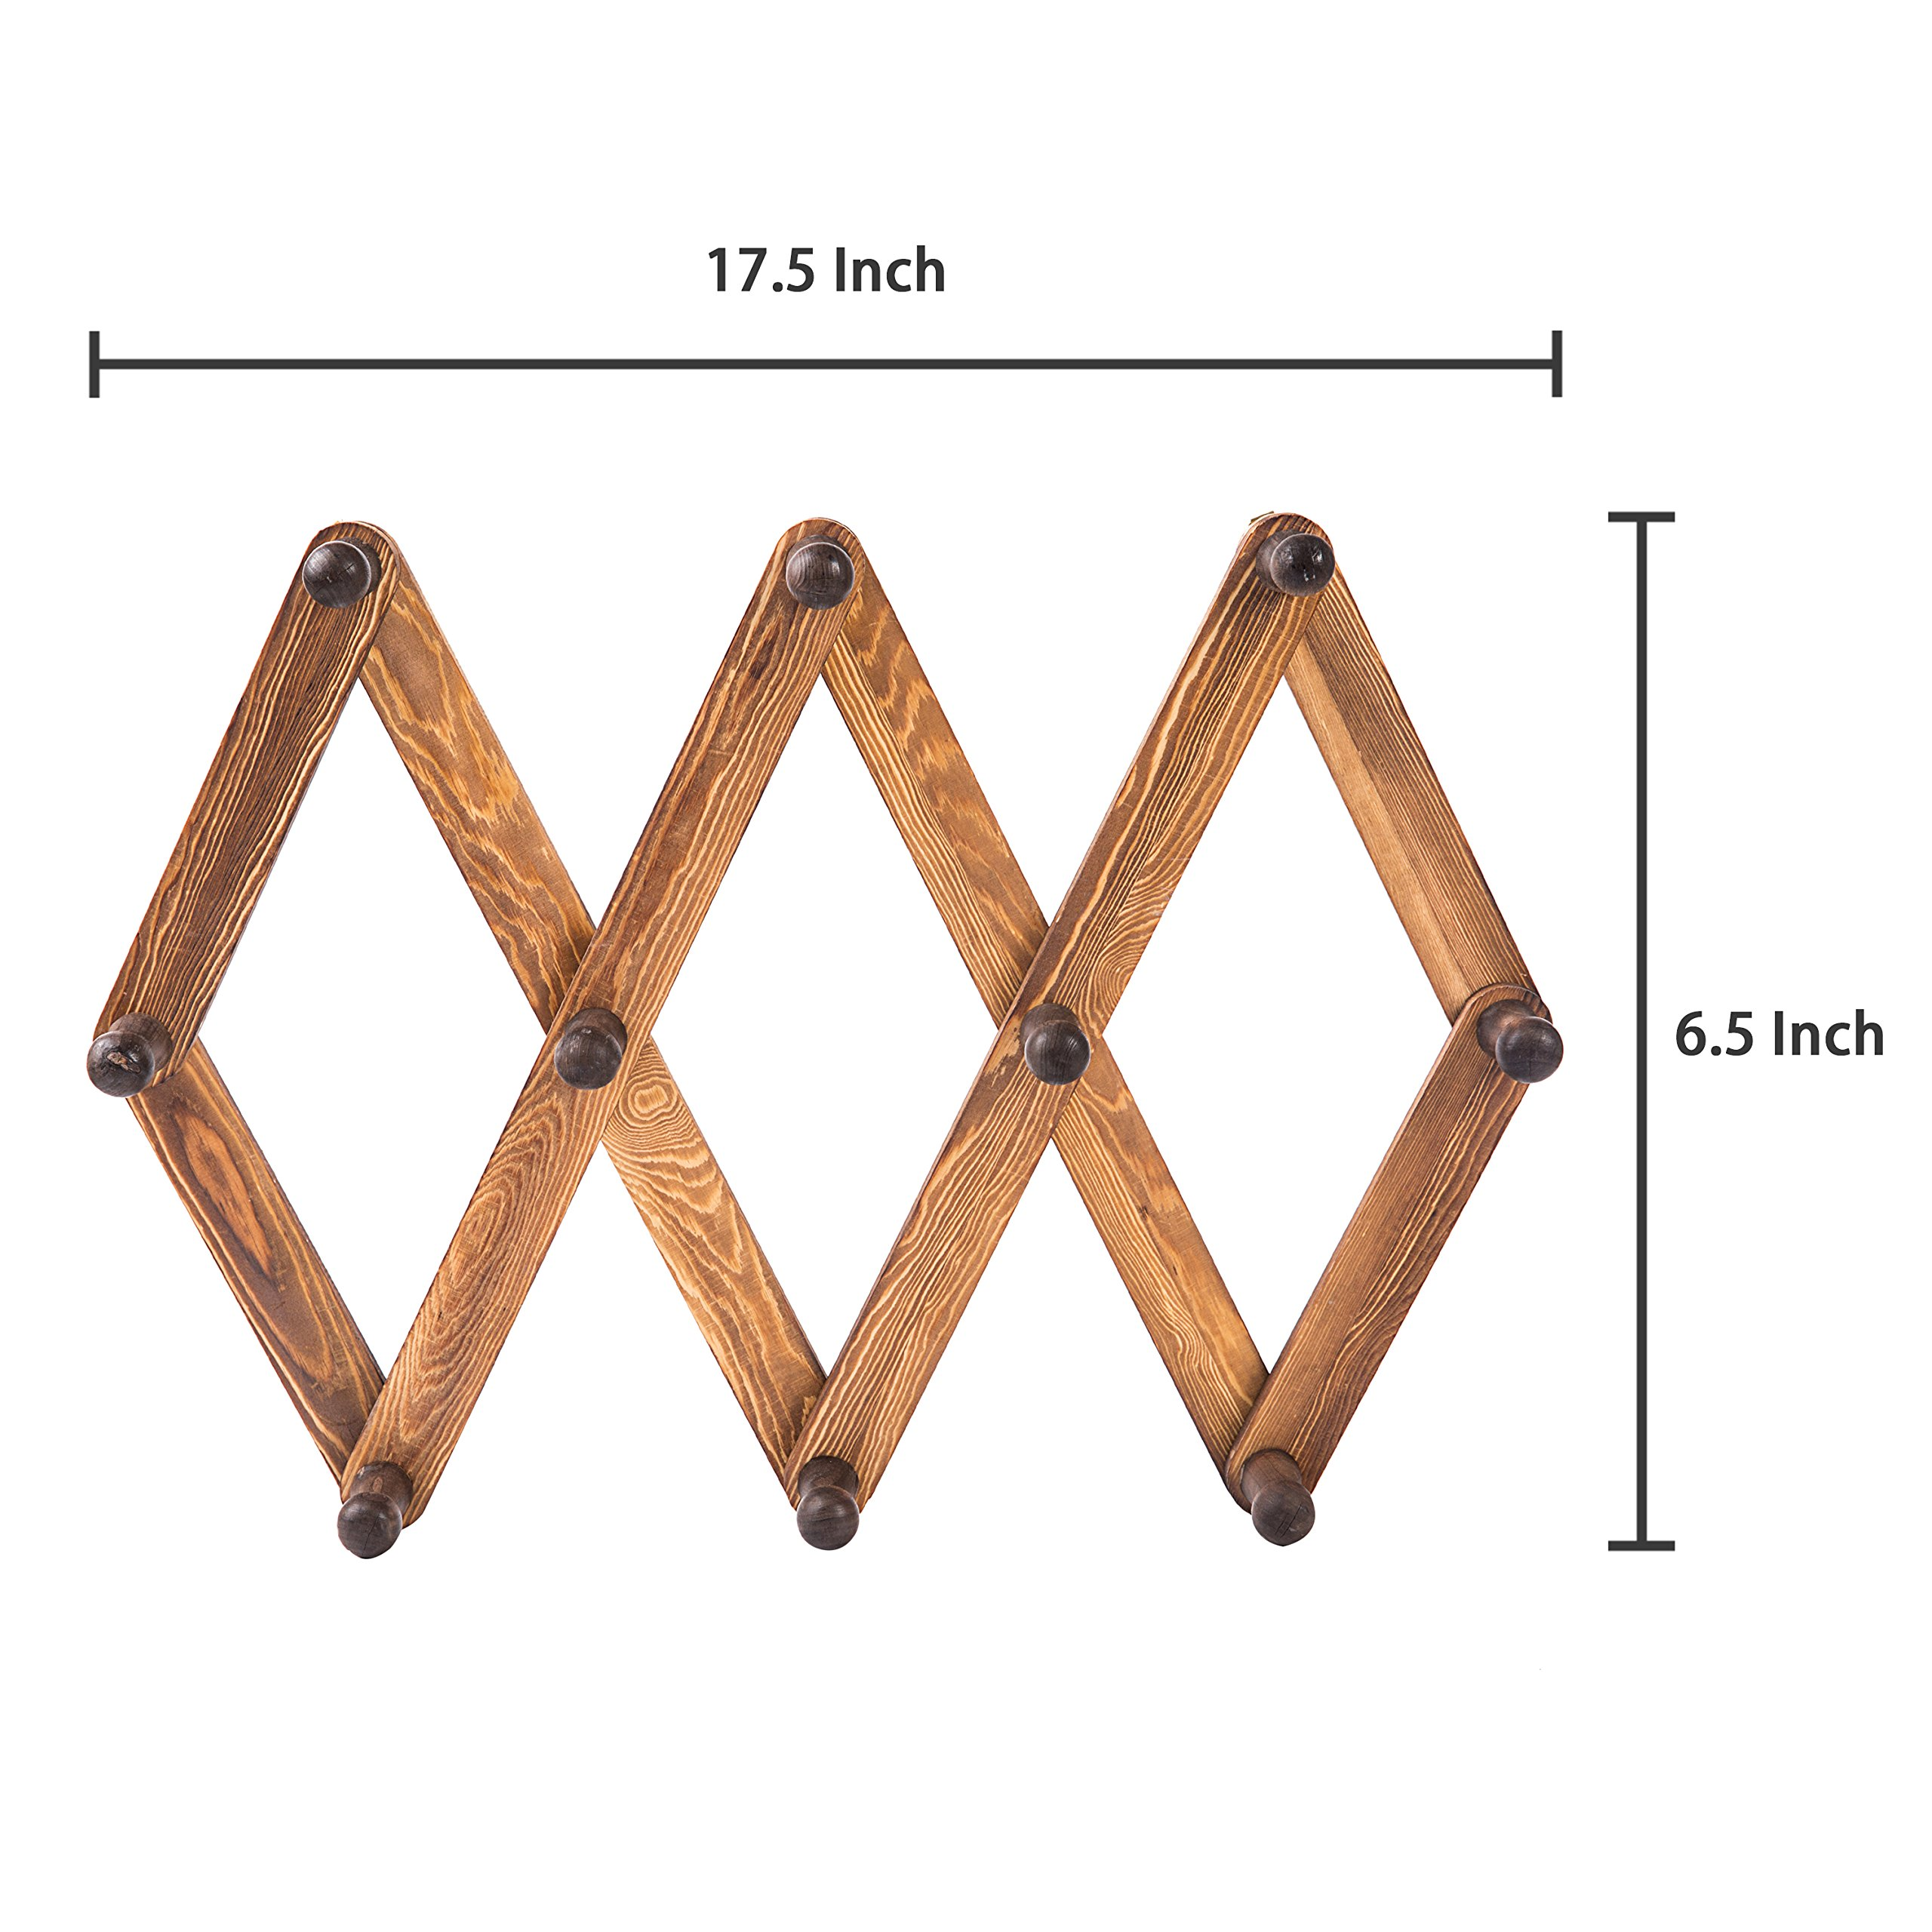 MyGift 10 Hook Torched Wood Wall Mounted Expandable Accordion Peg Coat Rack Hanger by MyGift (Image #7)